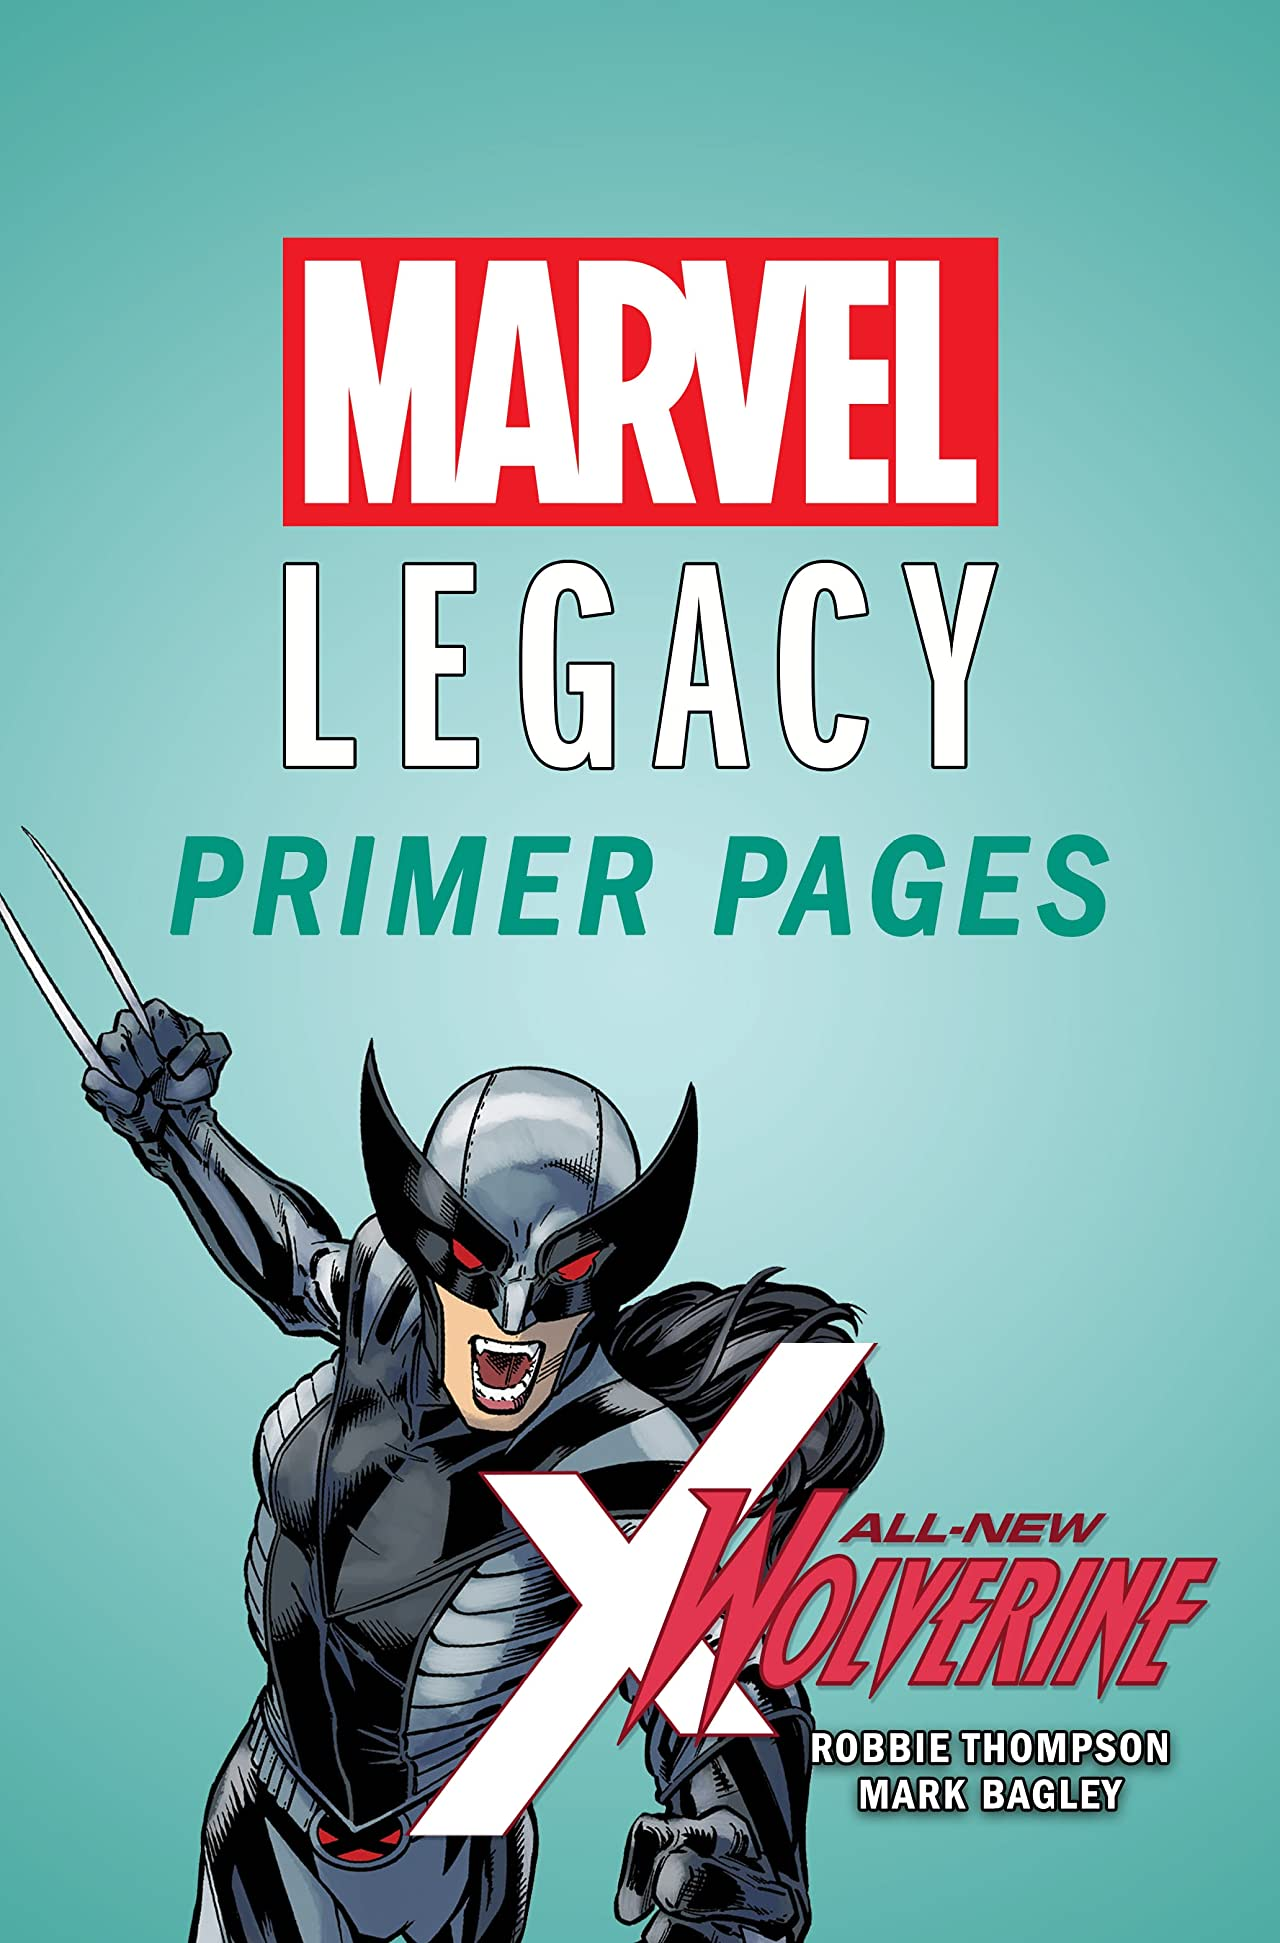 All-New Wolverine - Marvel Legacy Primer Pages